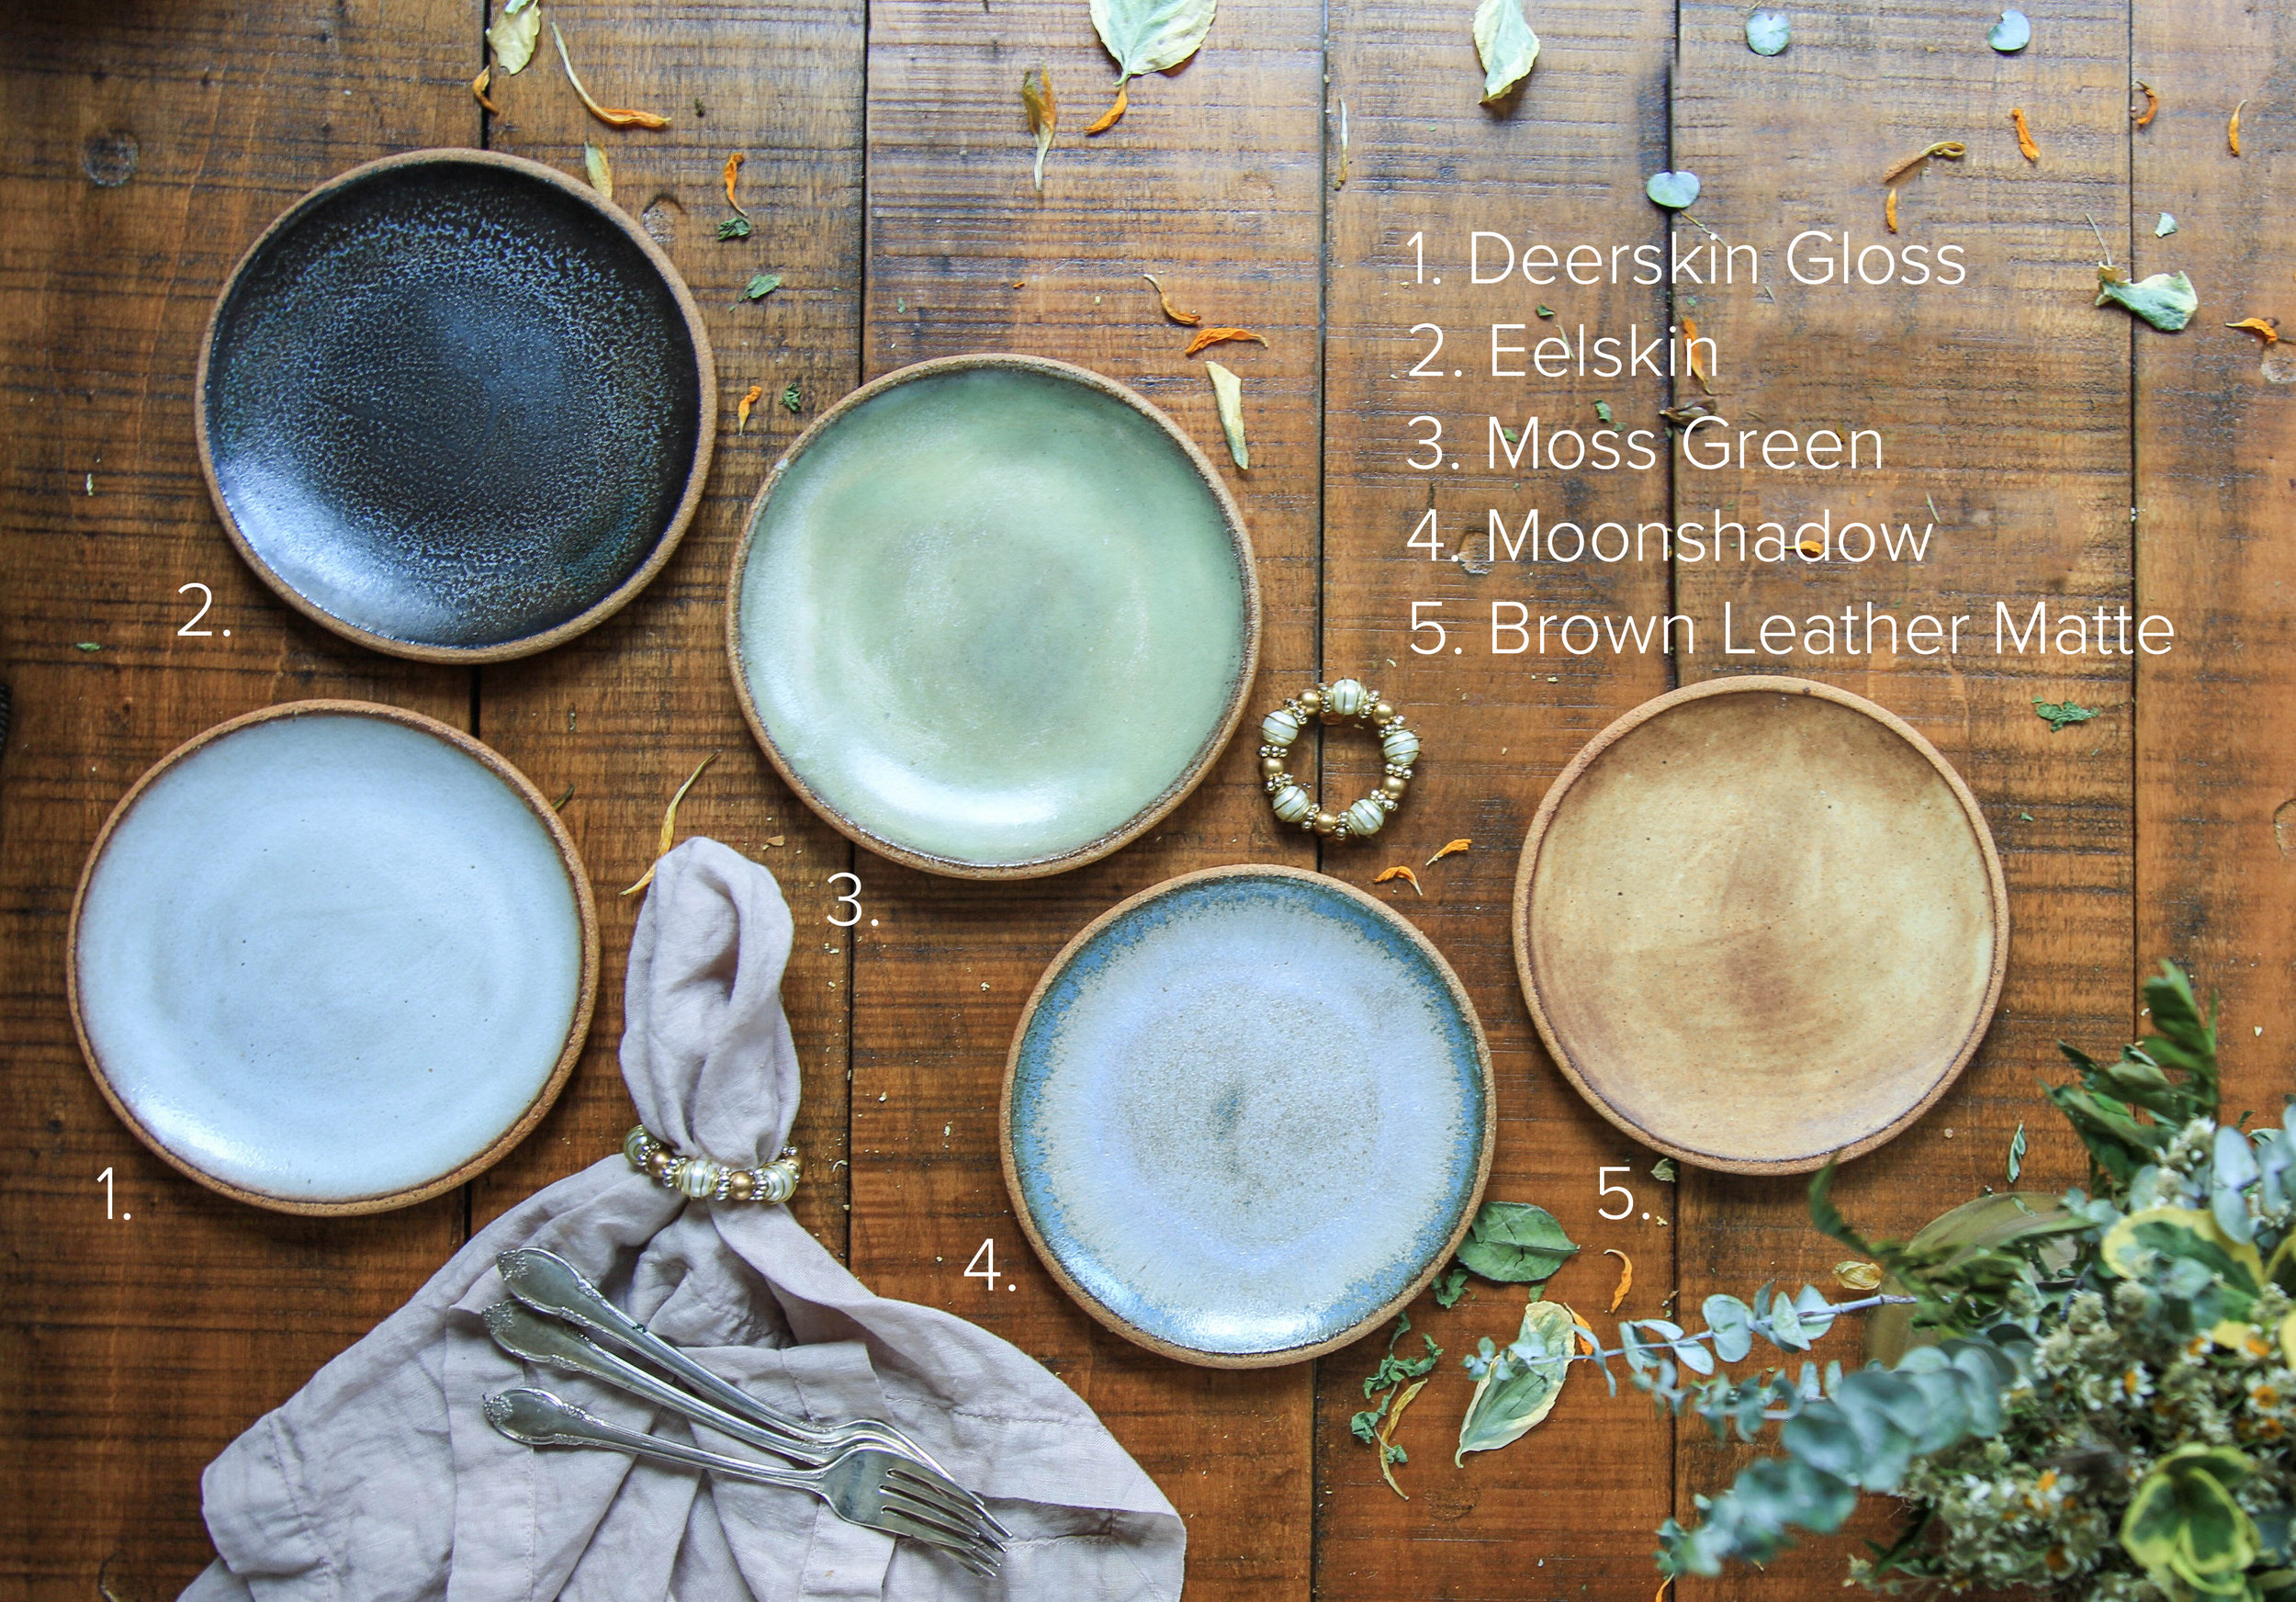 Glaze Examples on Salad Plates